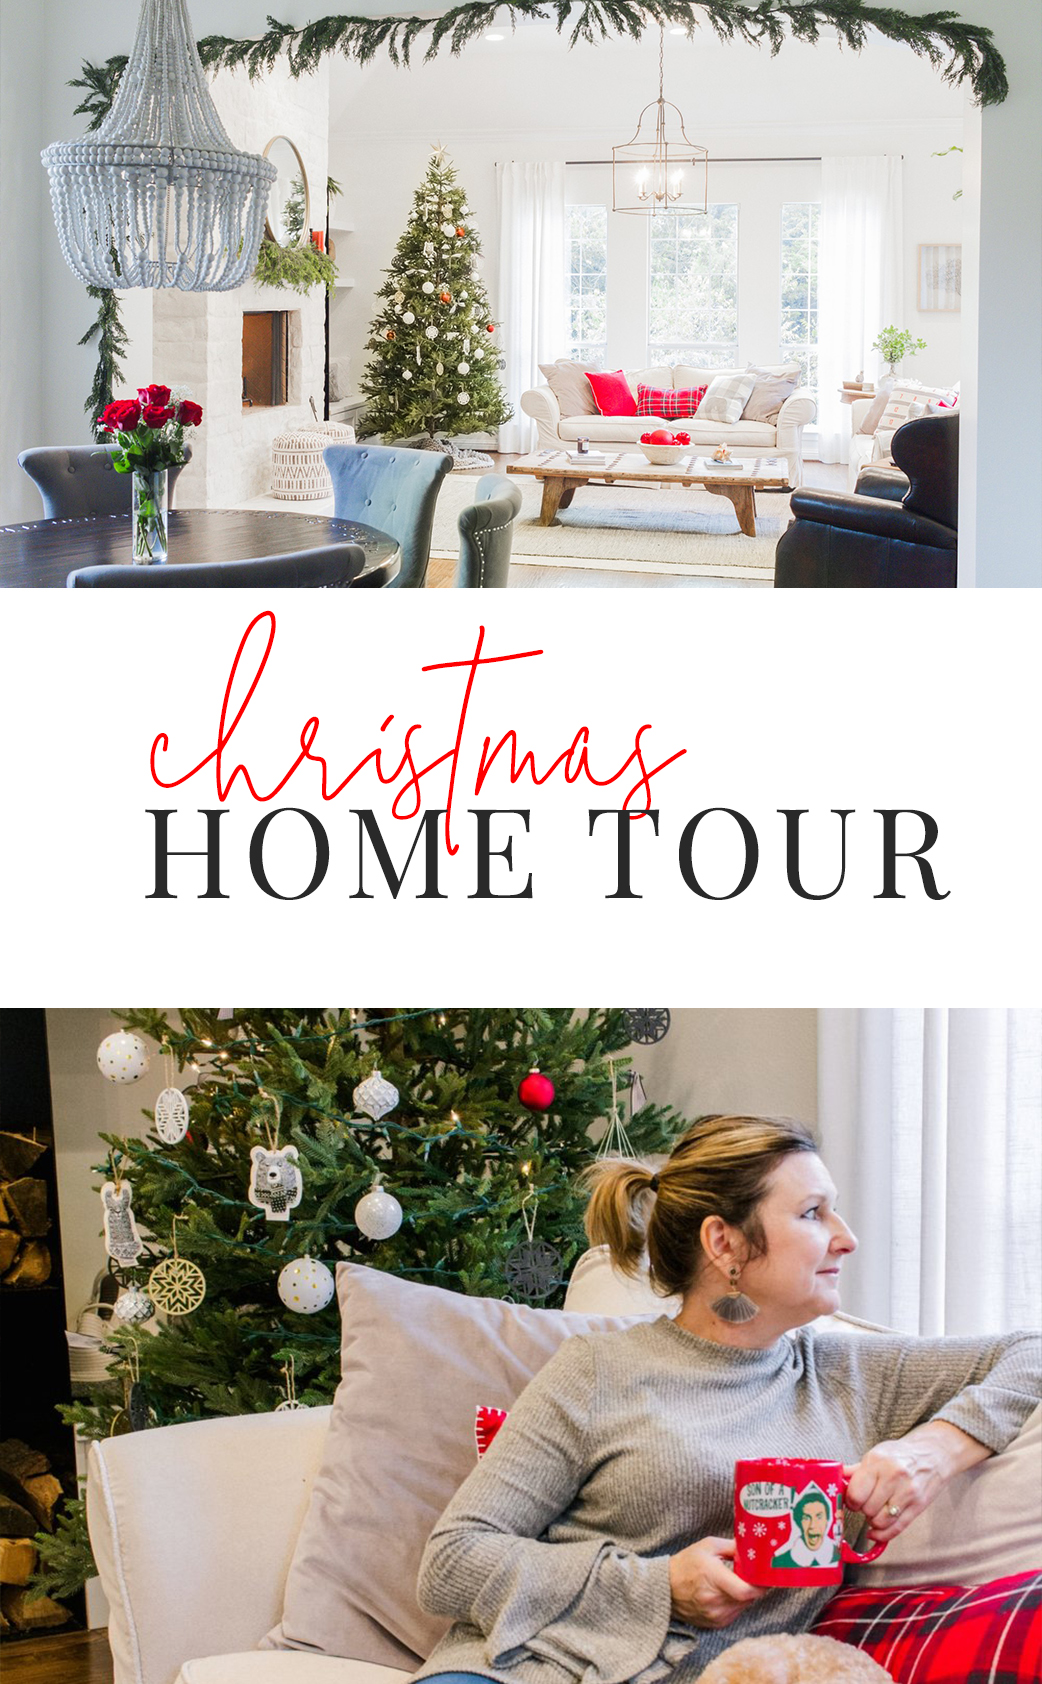 Christmas Home Tour.jpg